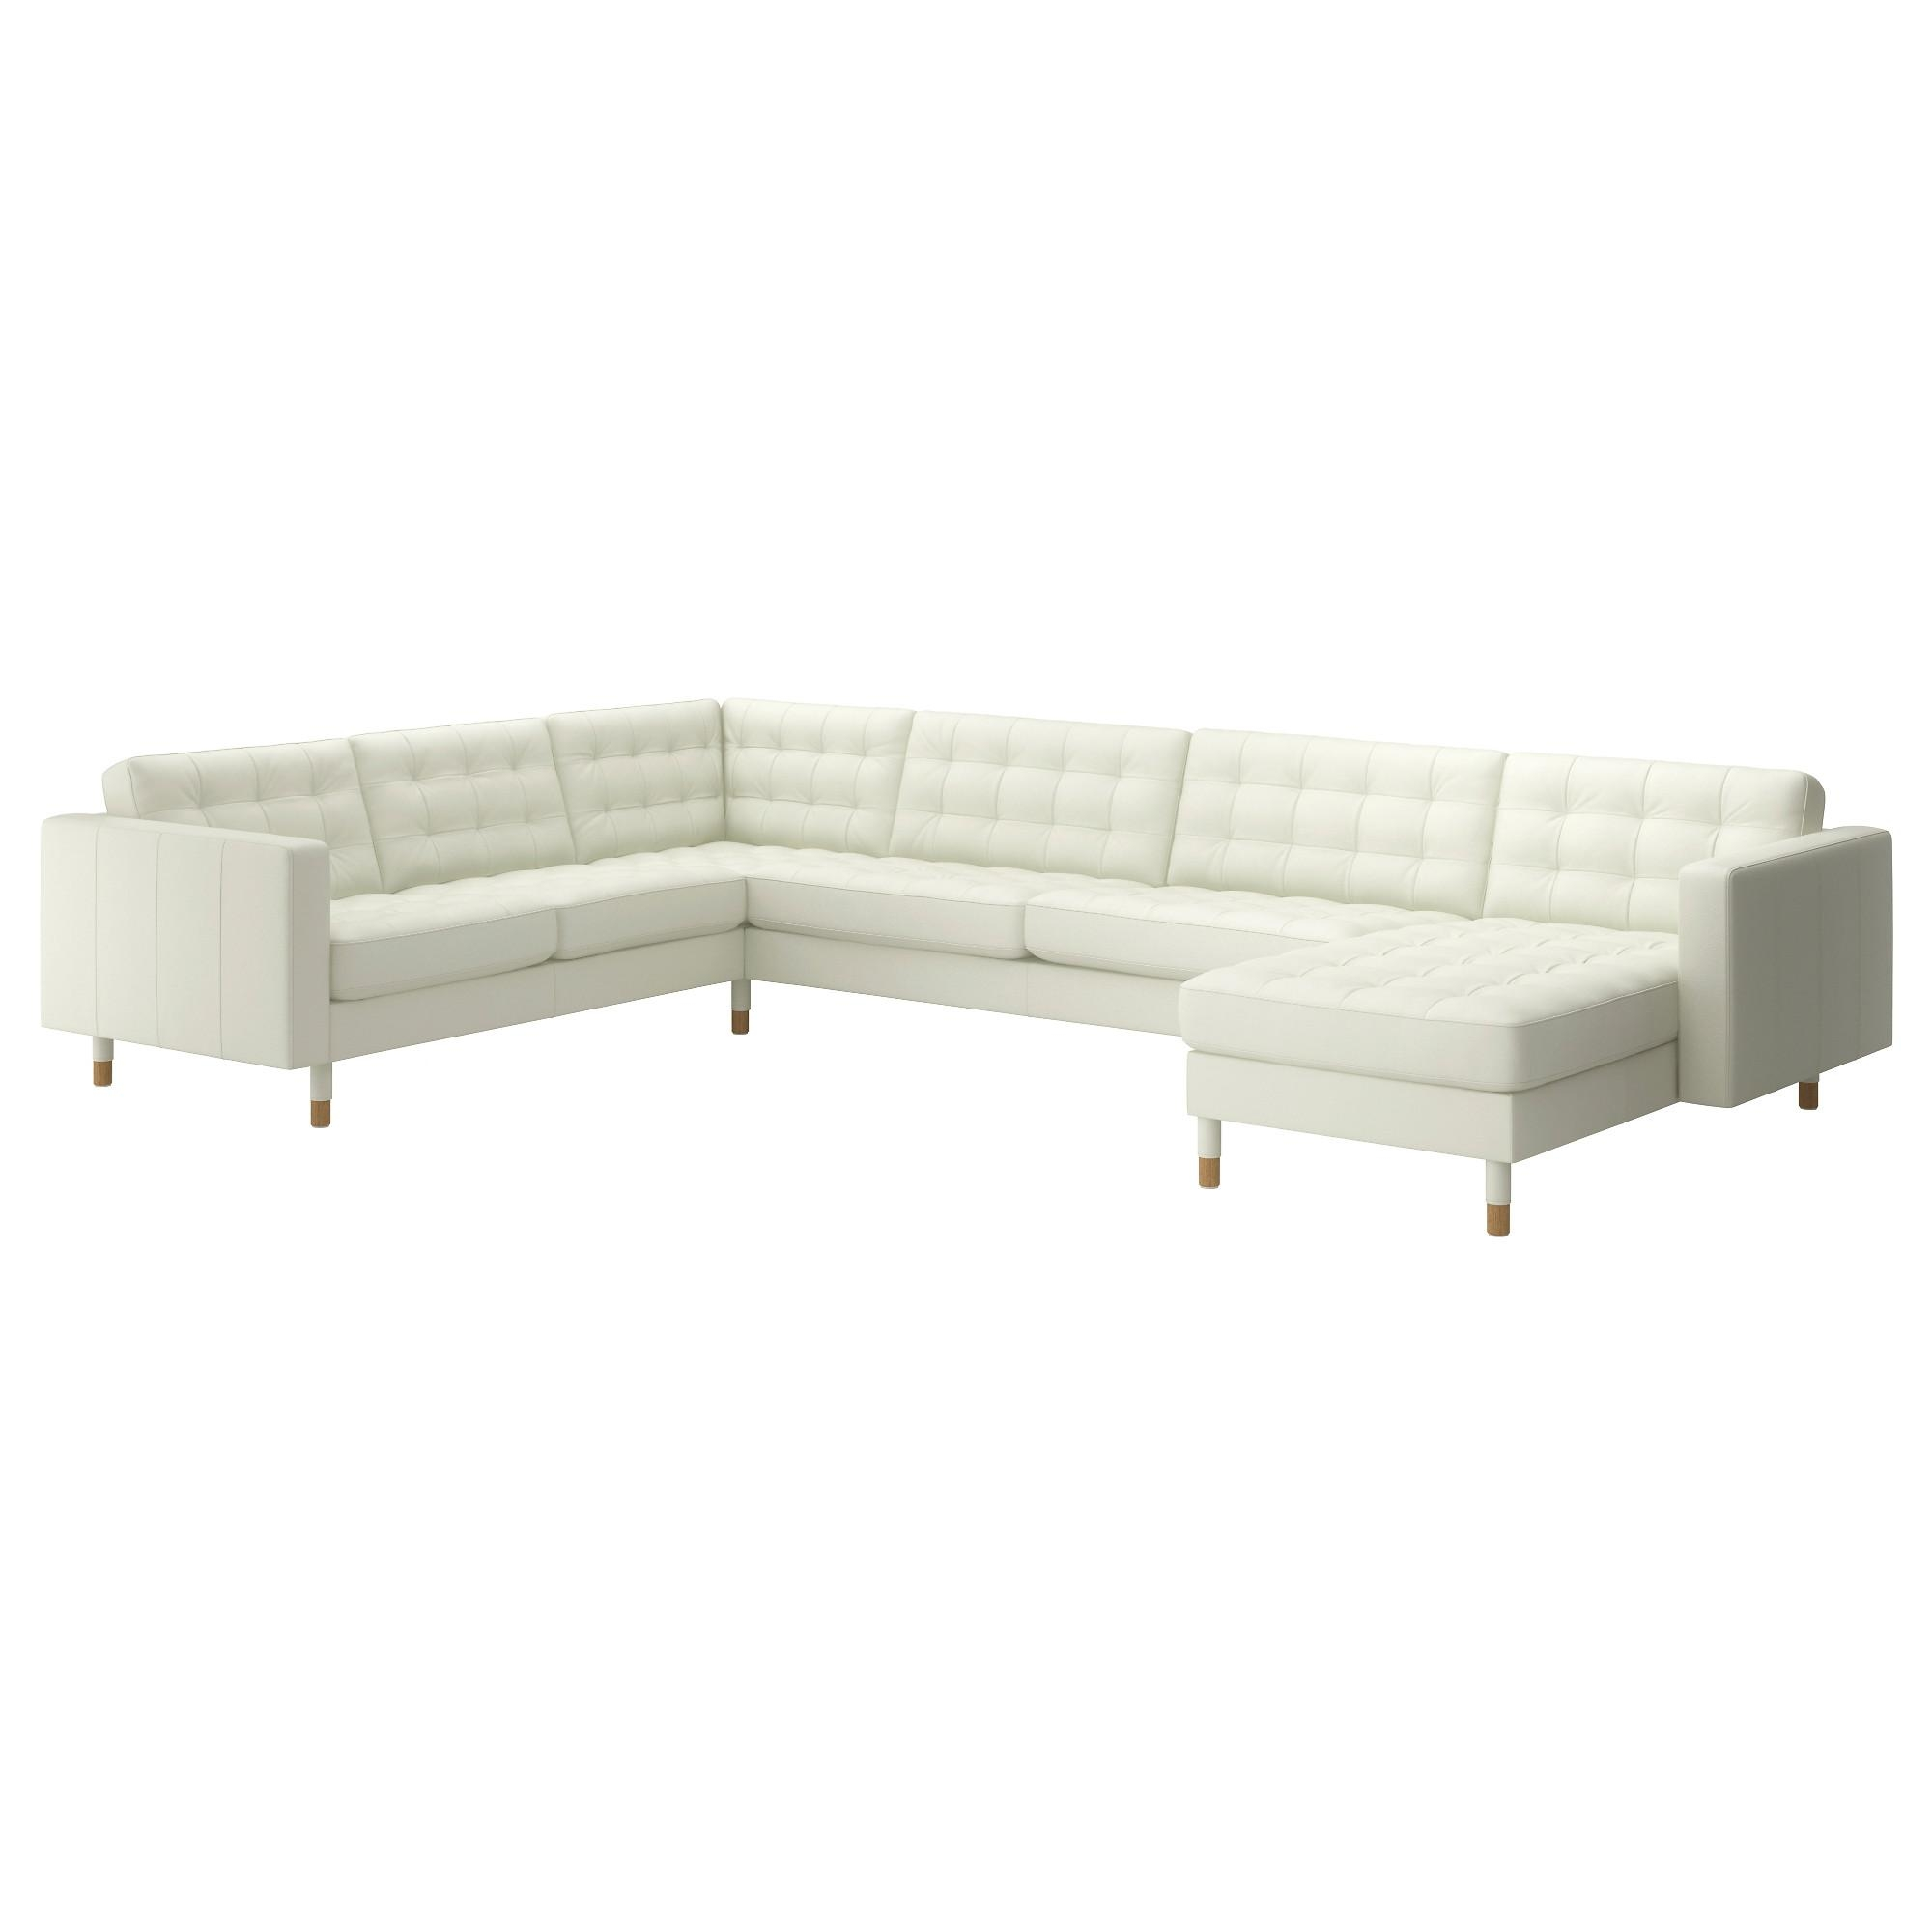 Sectional Sofas & Couches – Ikea For Furniture Sectionals Ikea (Image 12 of 15)